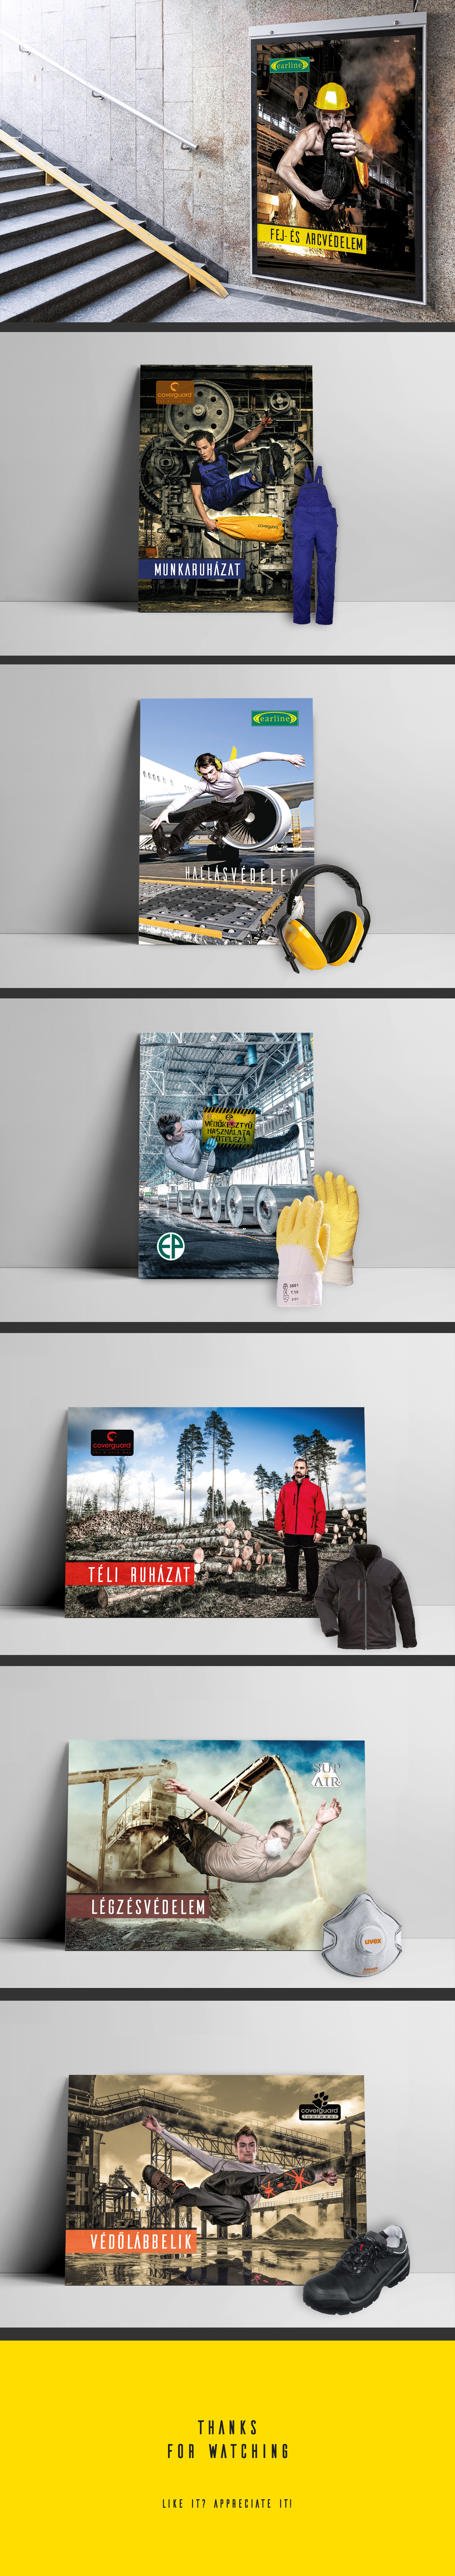 poster Collection creative safety products equipments portrait Landscape